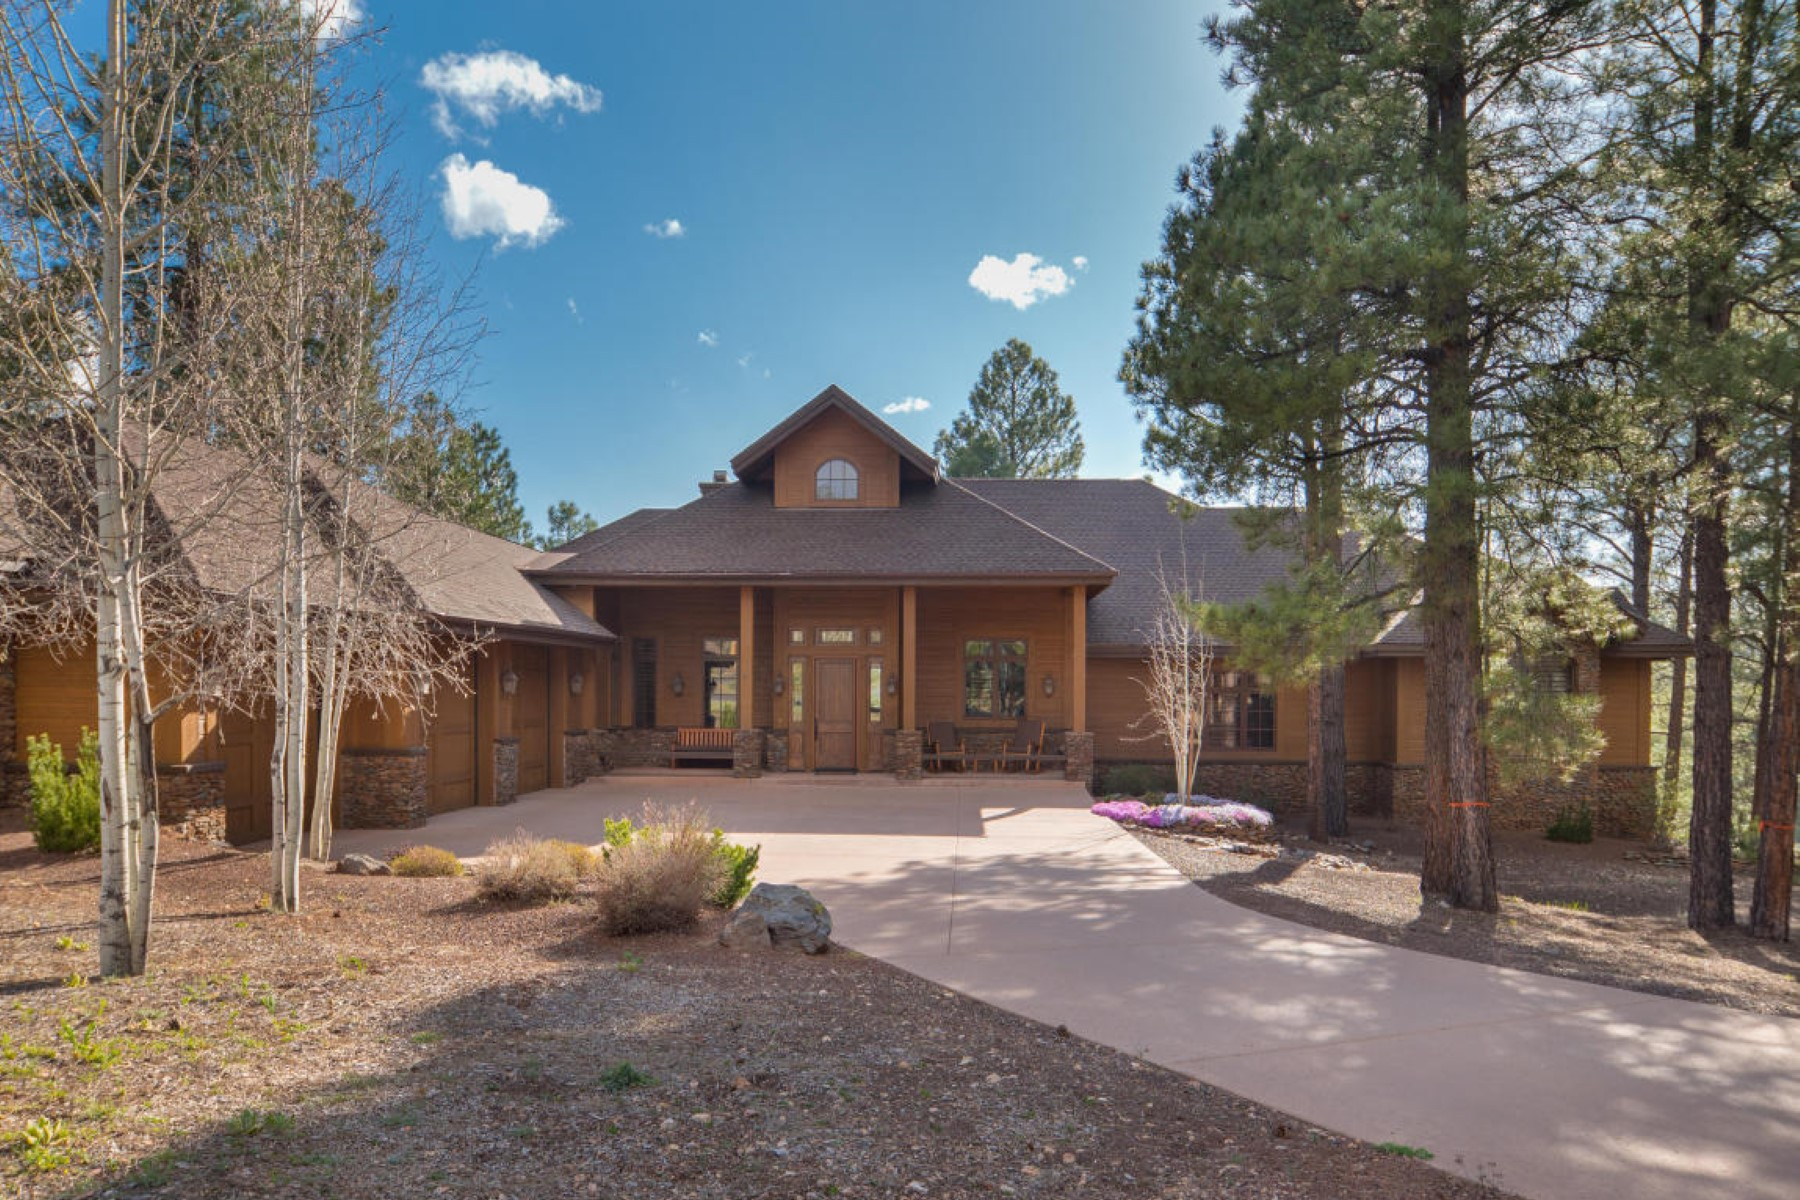 Single Family Home for Sale at Stunning mountain retreat in the community of Forest Highlands Golf Club. 2098 CECIL RICHARDSON RD Flagstaff, Arizona 86005 United States